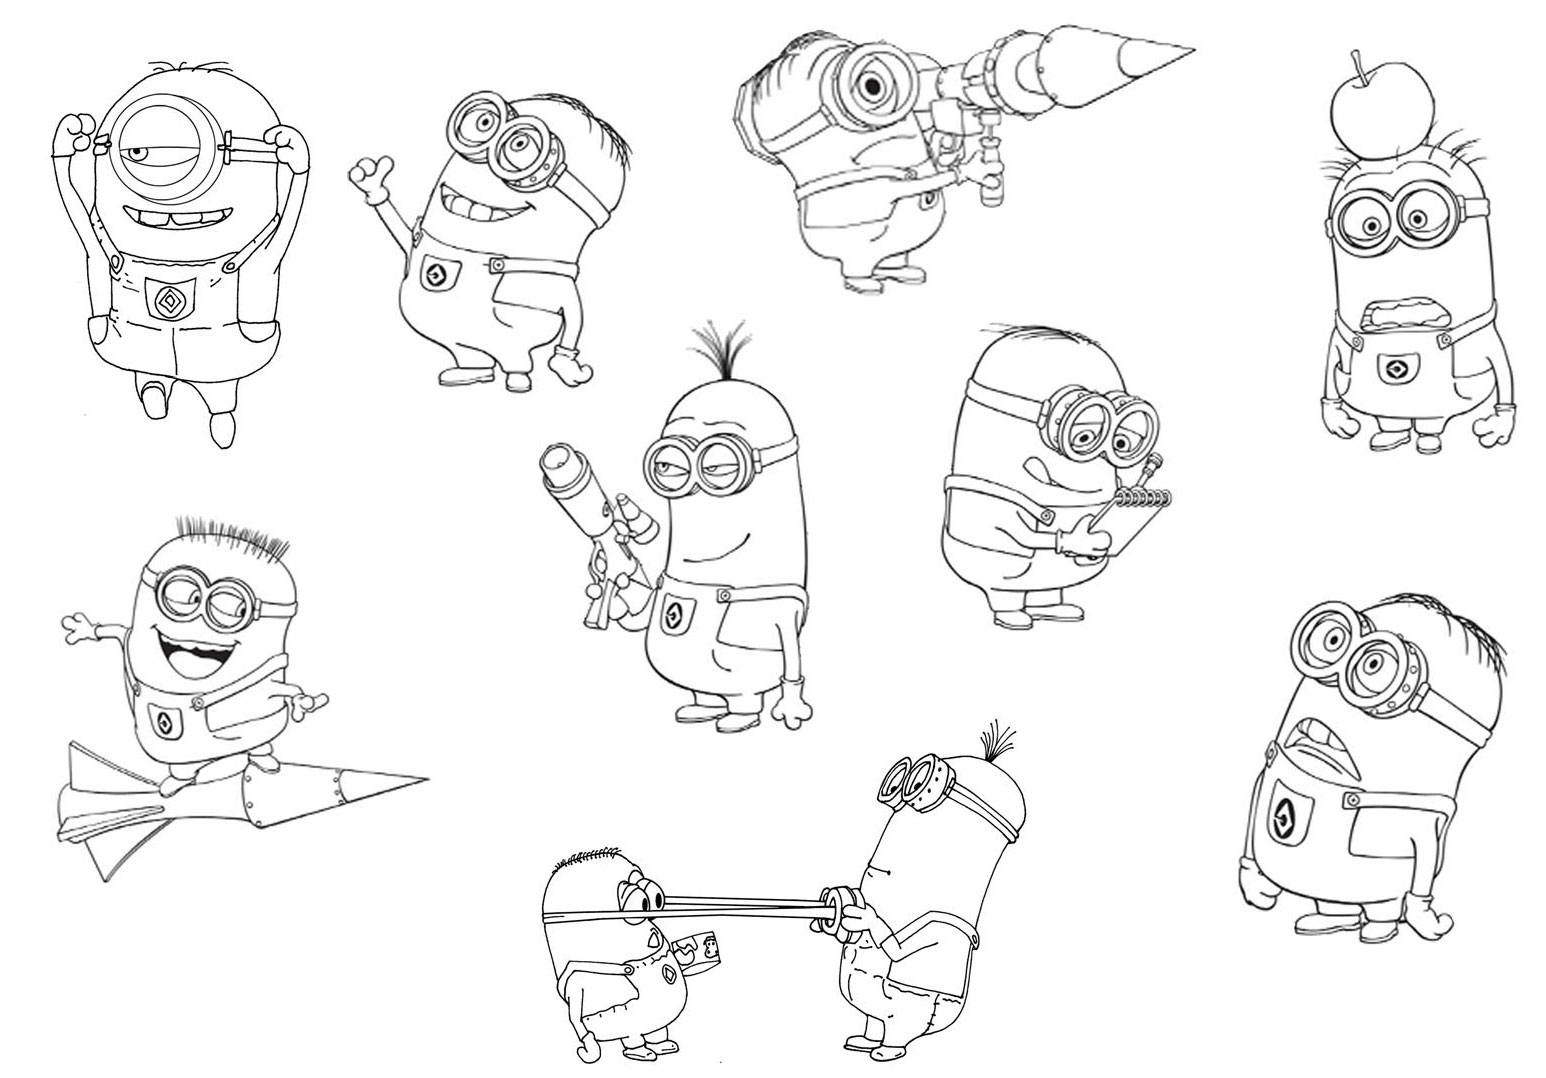 Despicable Me 2 Minions Coloring Pages Printable for Kids